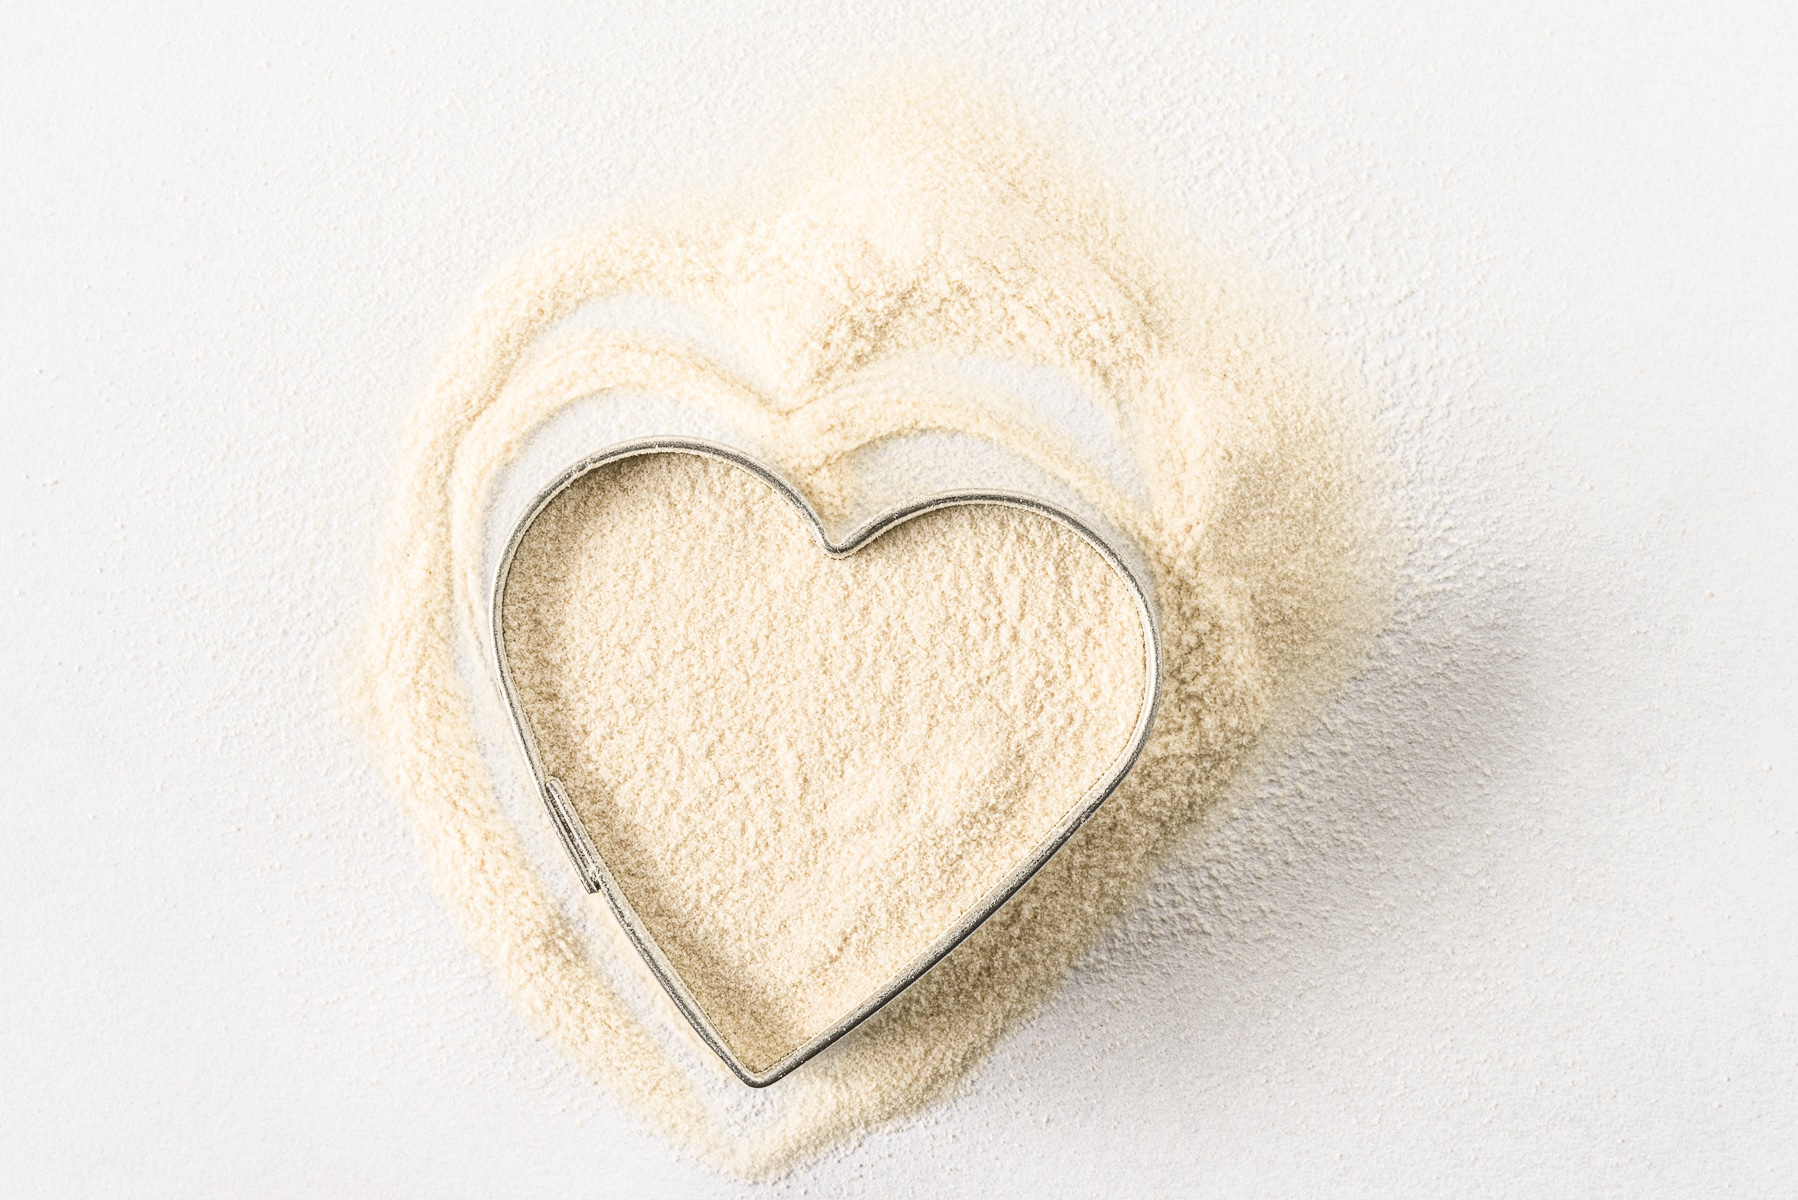 A small metal heart shaped cookie cutter filled with white powdered xanthan gum.